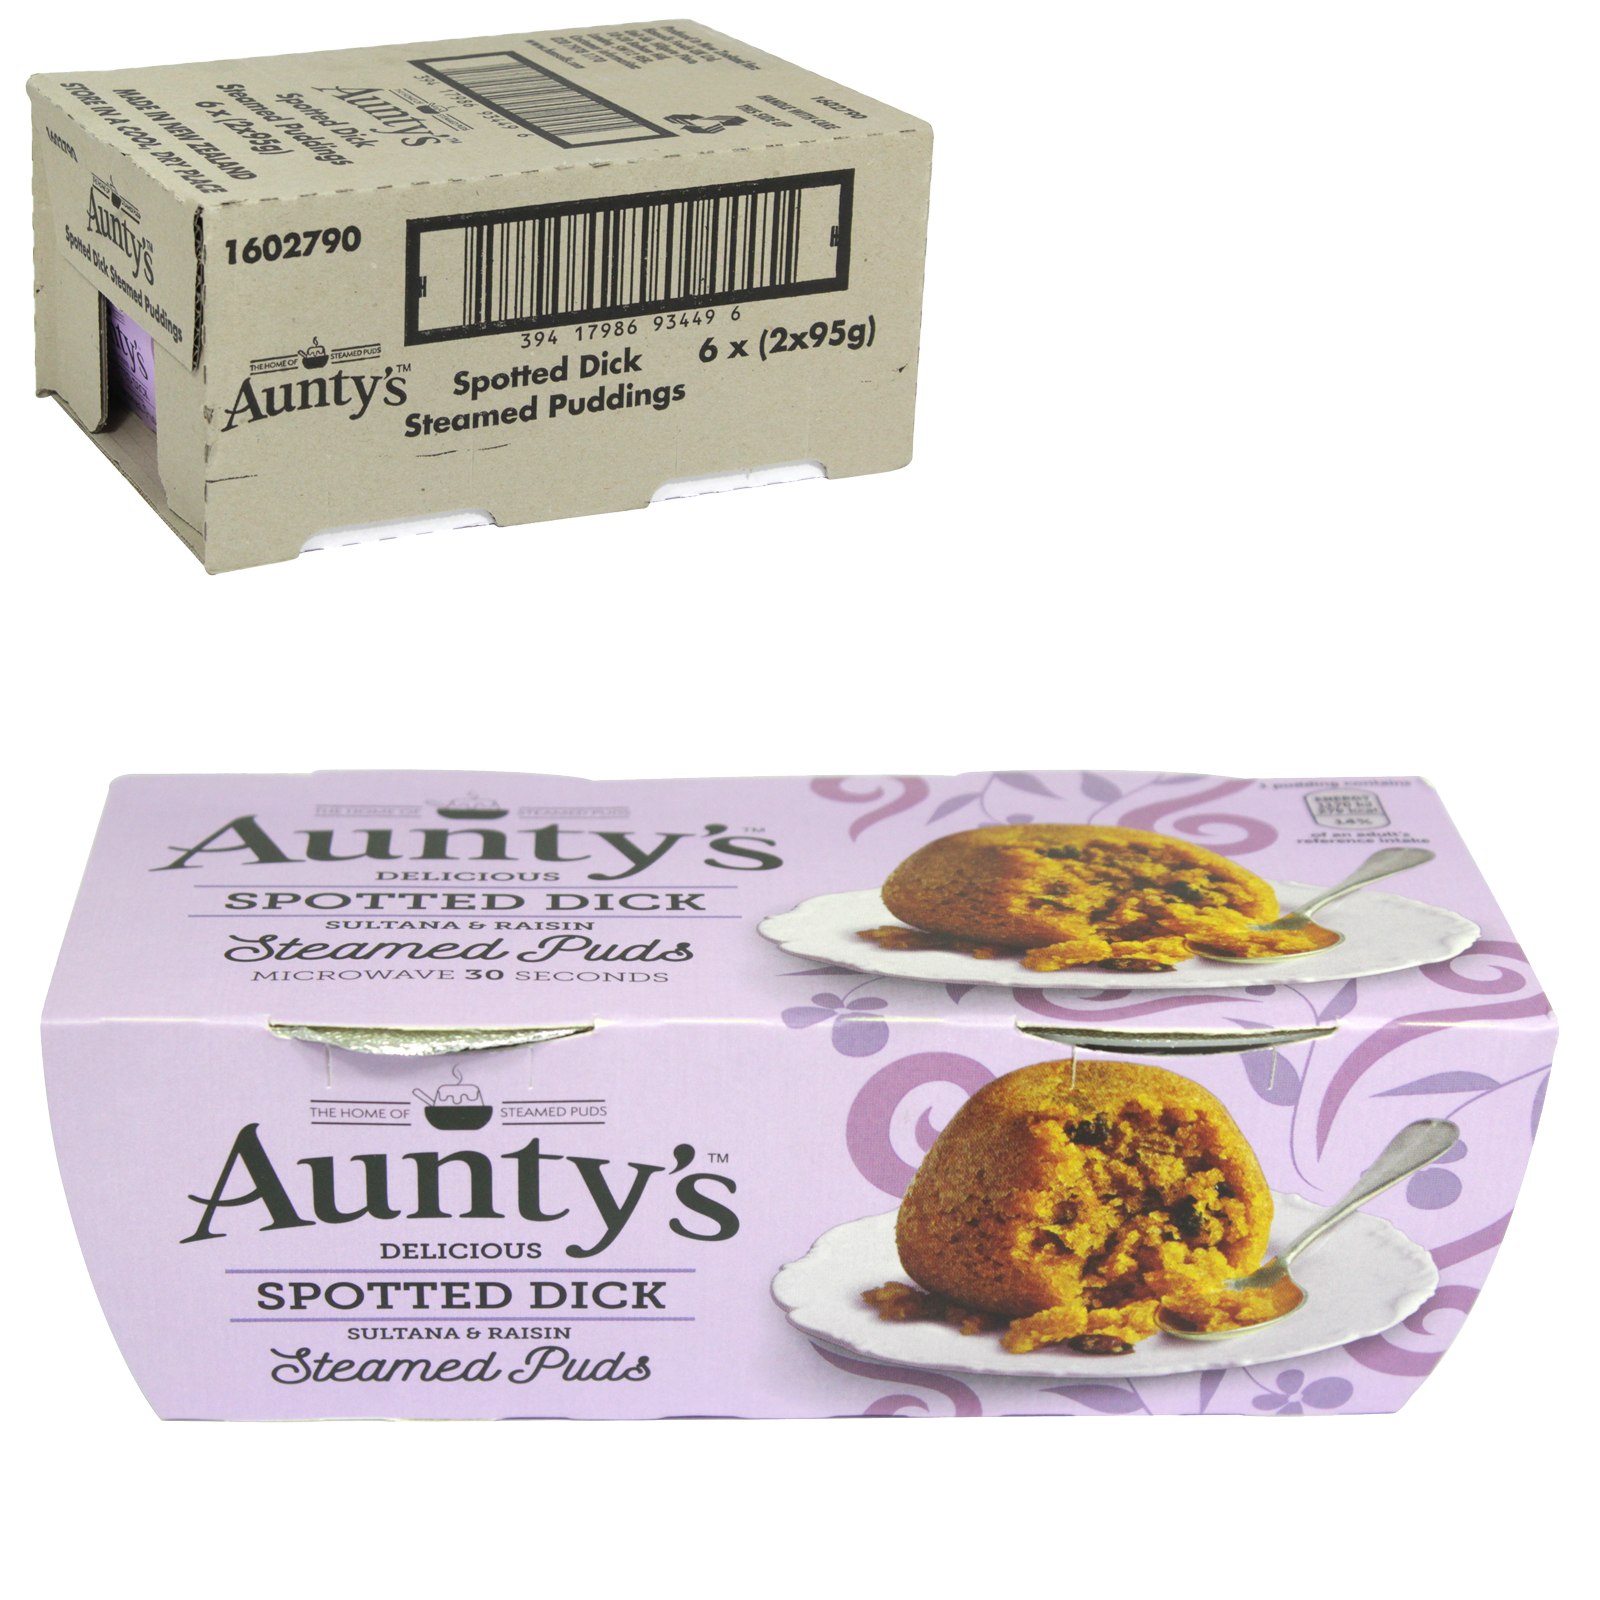 AUNTYS PUDDINGS 2X95GM SPOTTED DICK X6